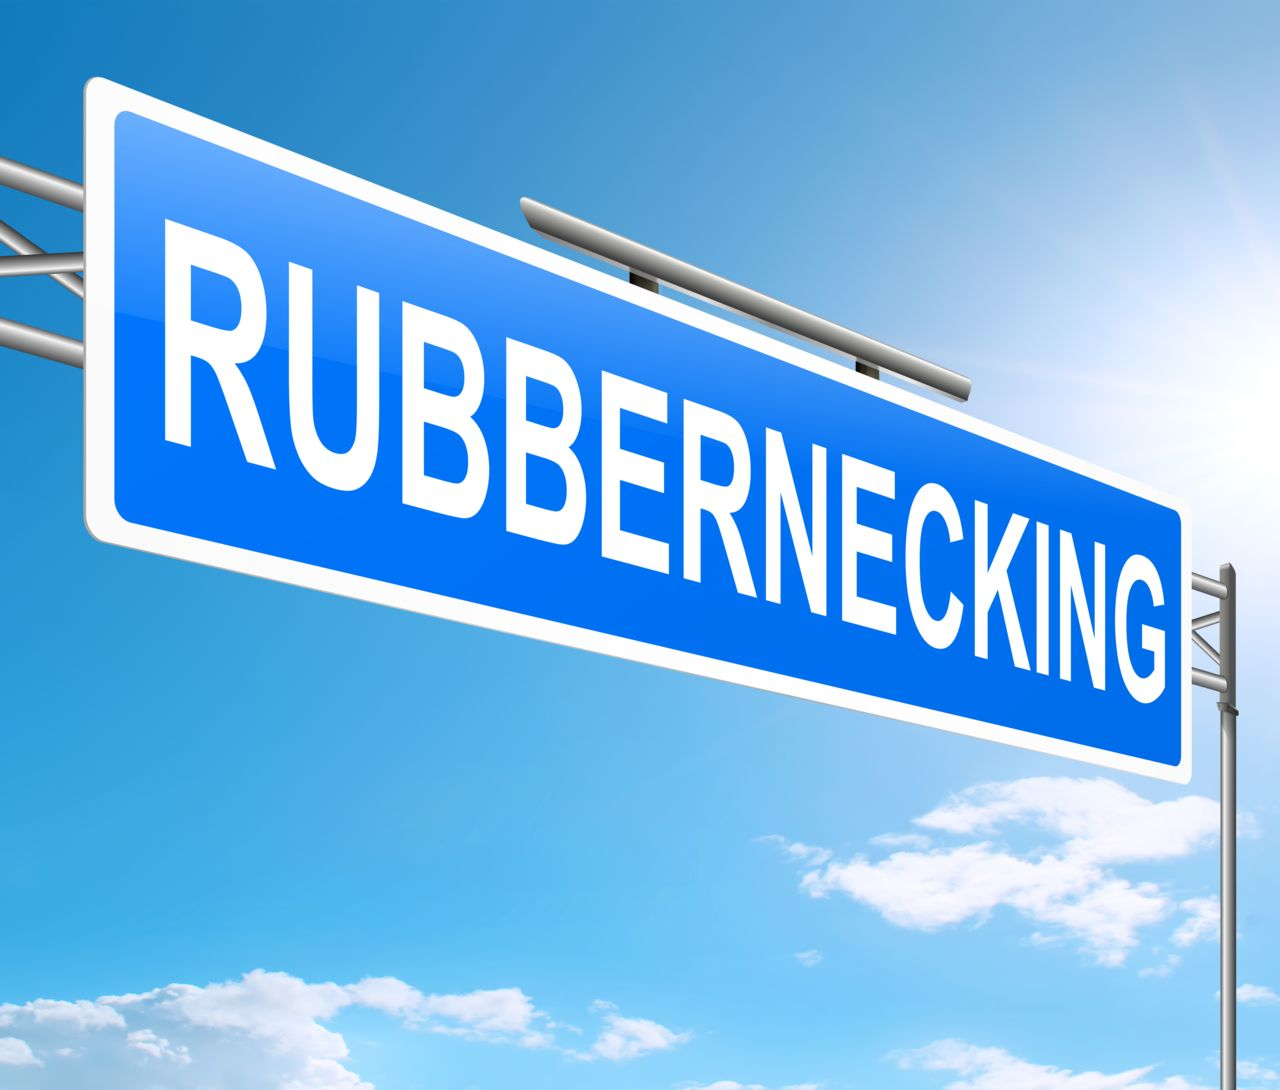 Rubbernecking Highway Sign